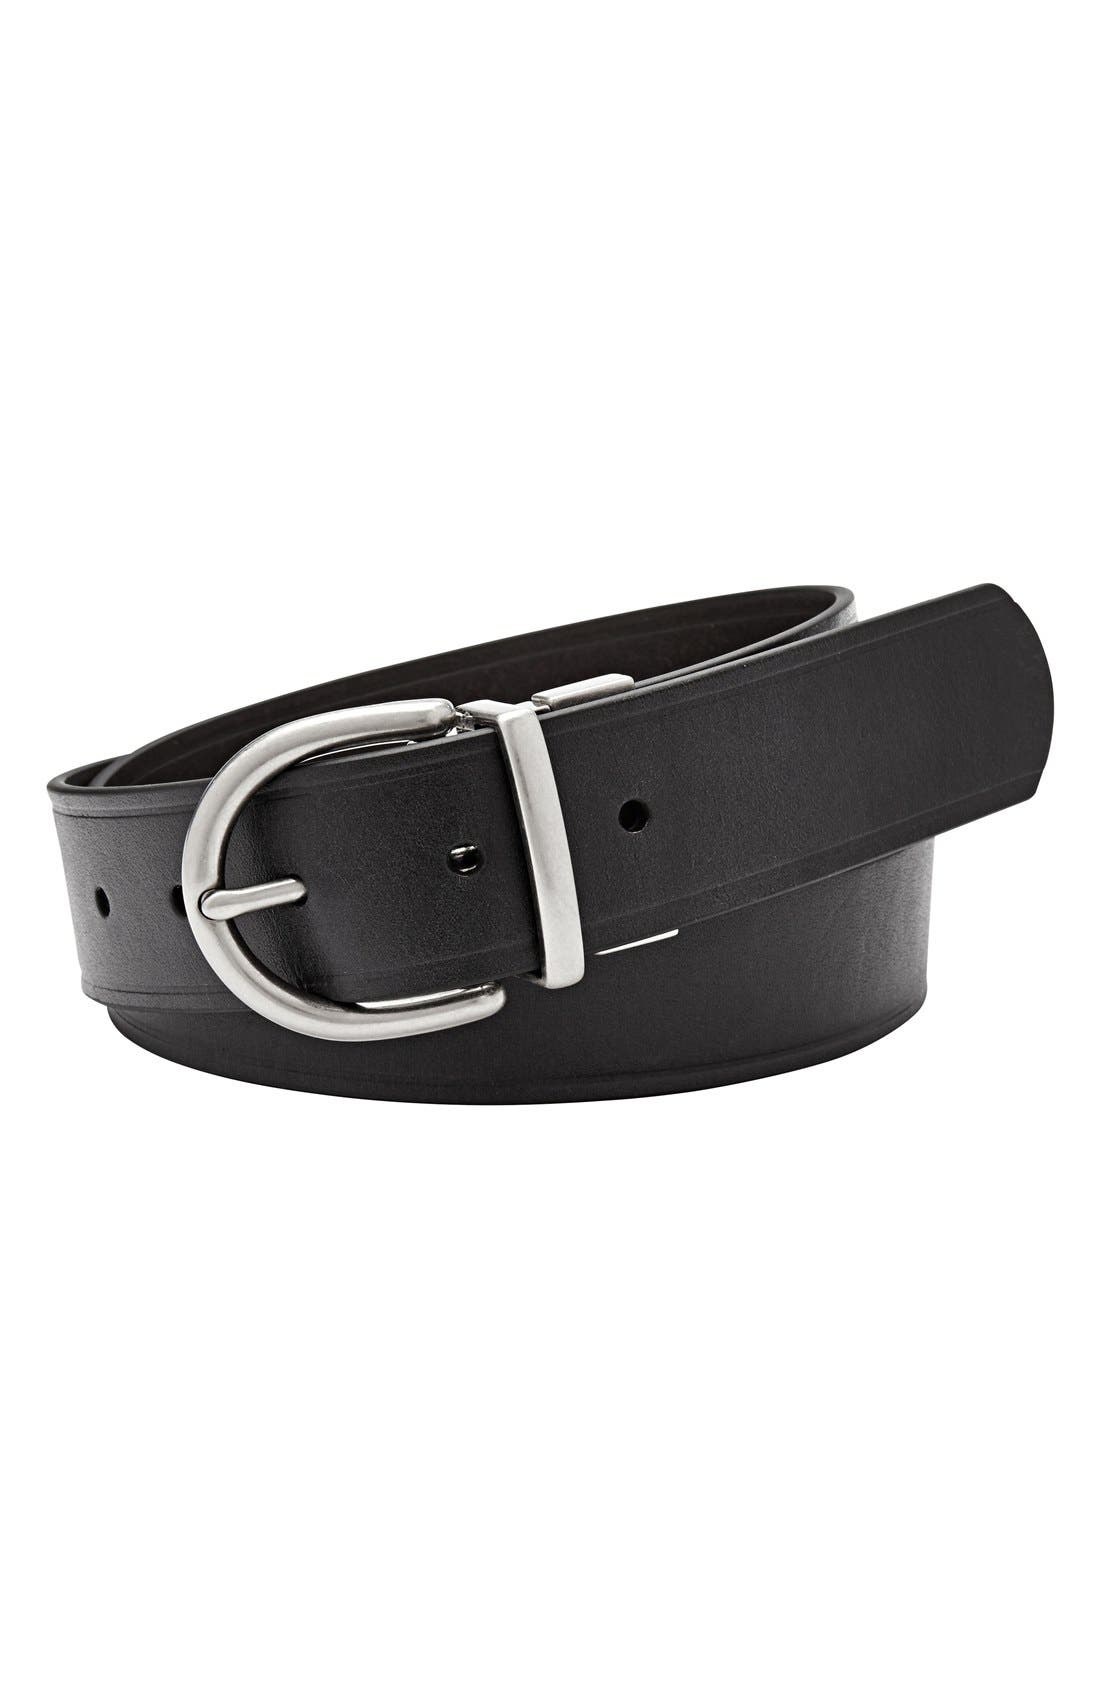 Main Image - Fossil Reversible Metal Keeper Leather Belt